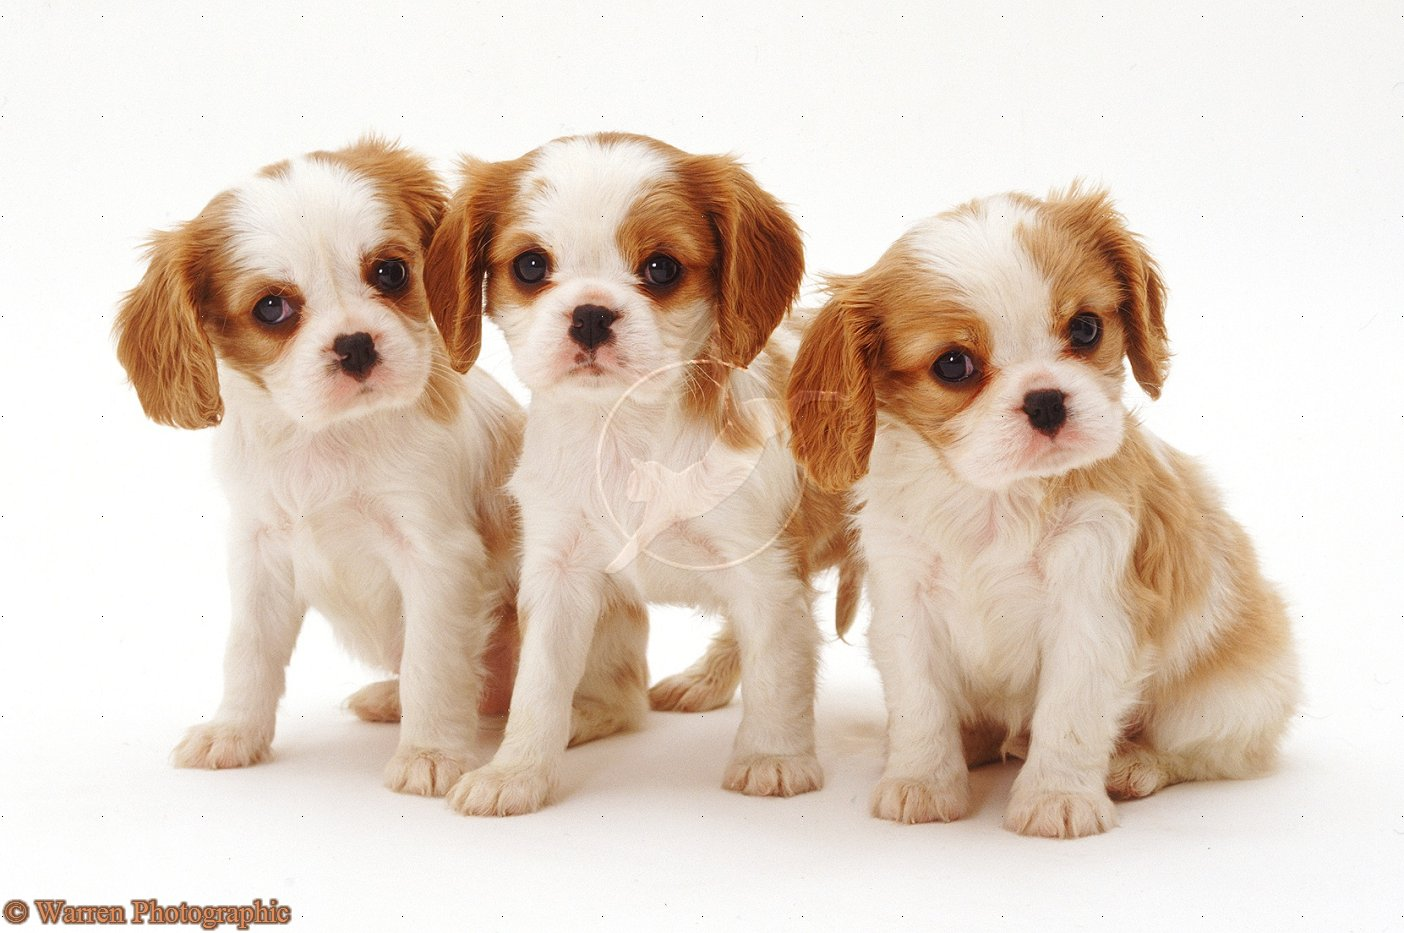 King Charles Spaniel Puppies: King King Charles Spaniel Puppies Breed